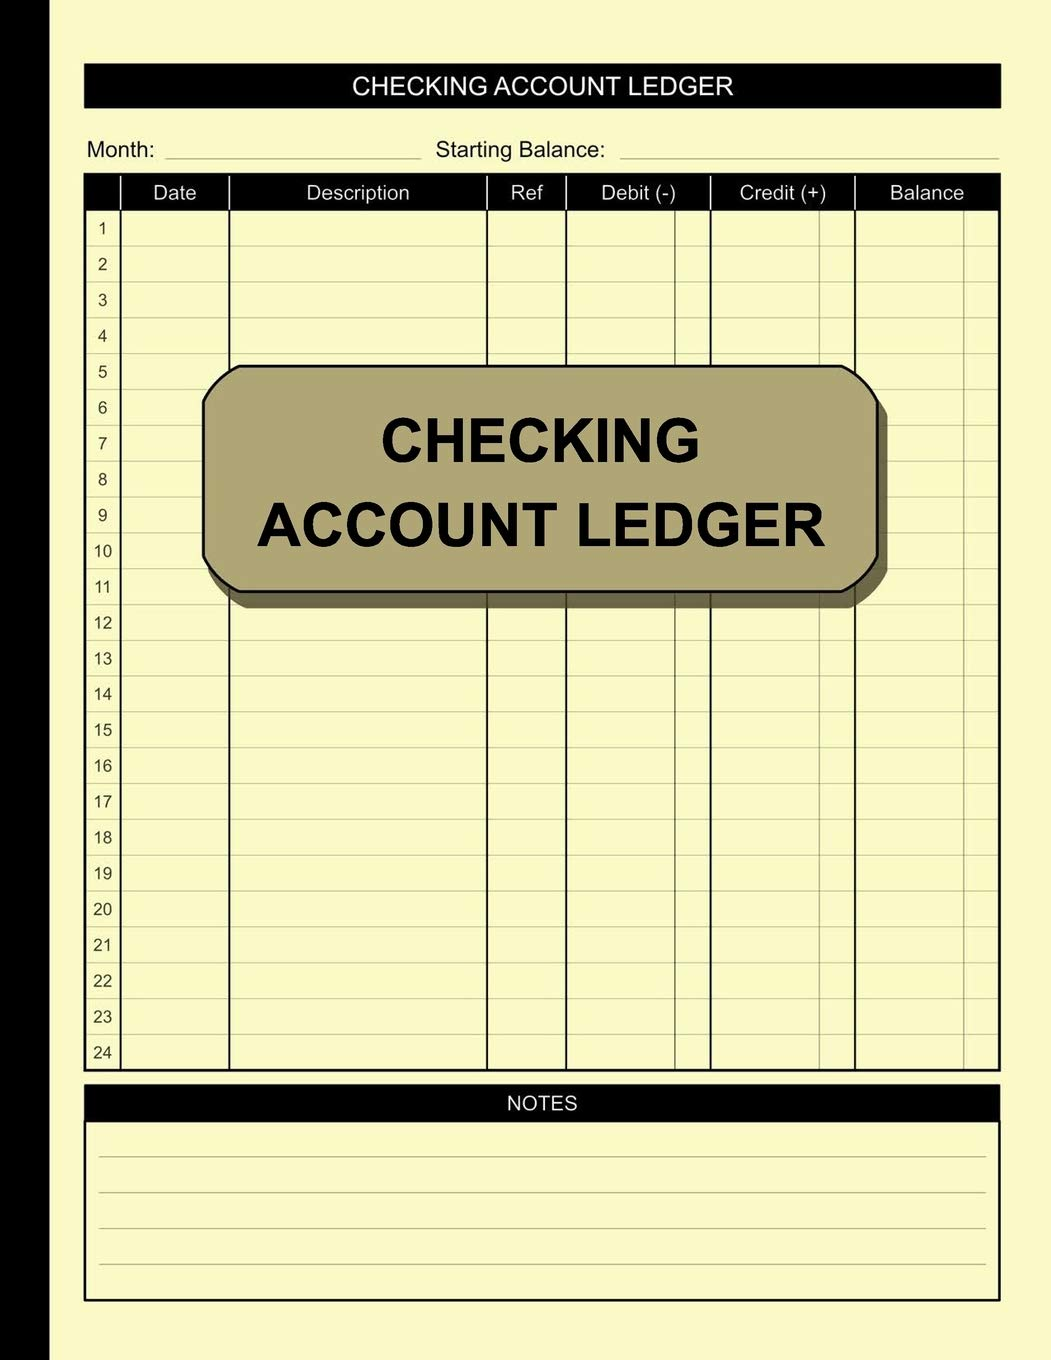 Image OfChecking Account Ledger: Simple Accounting Ledger For Bookkeeping Check And Debit Card Register 100 Pages 2,400 Entry Line...